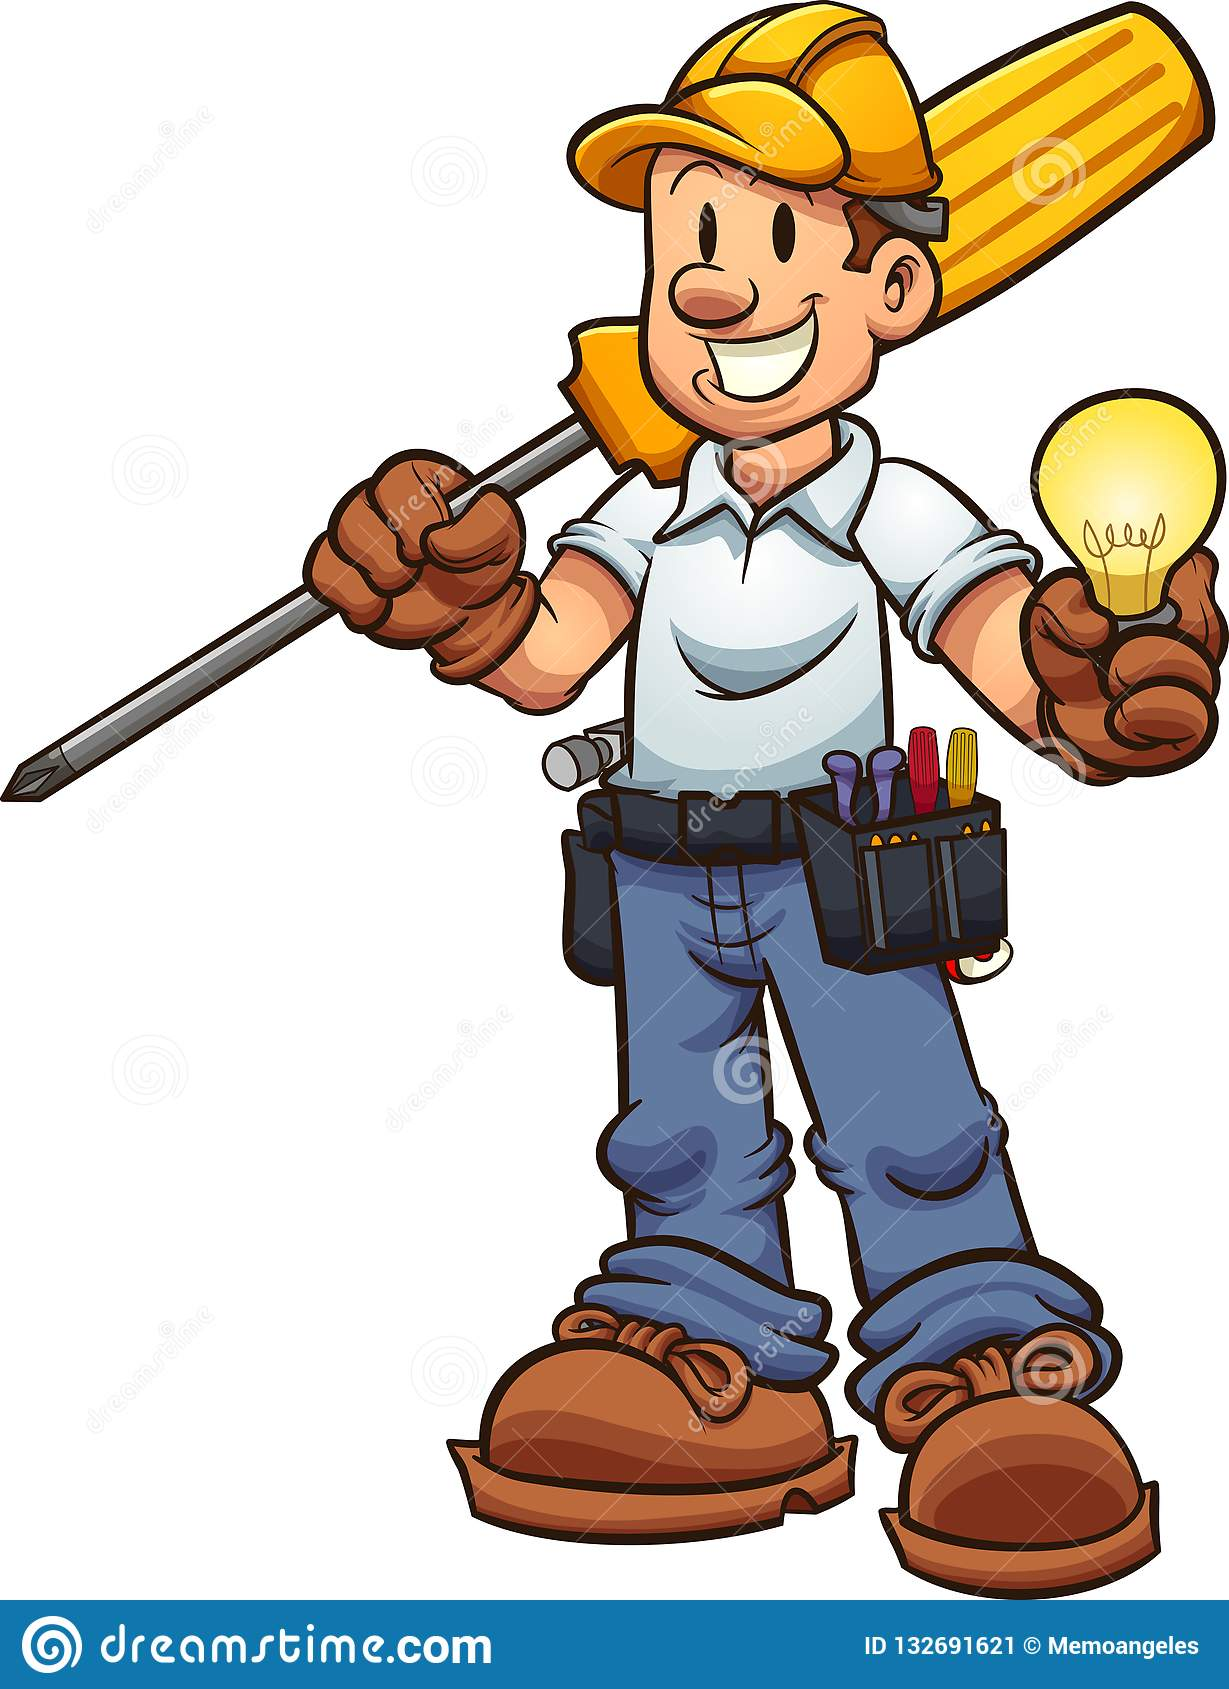 Cartoon Electrician Holding An Oversized Driver And A Lightbulb.